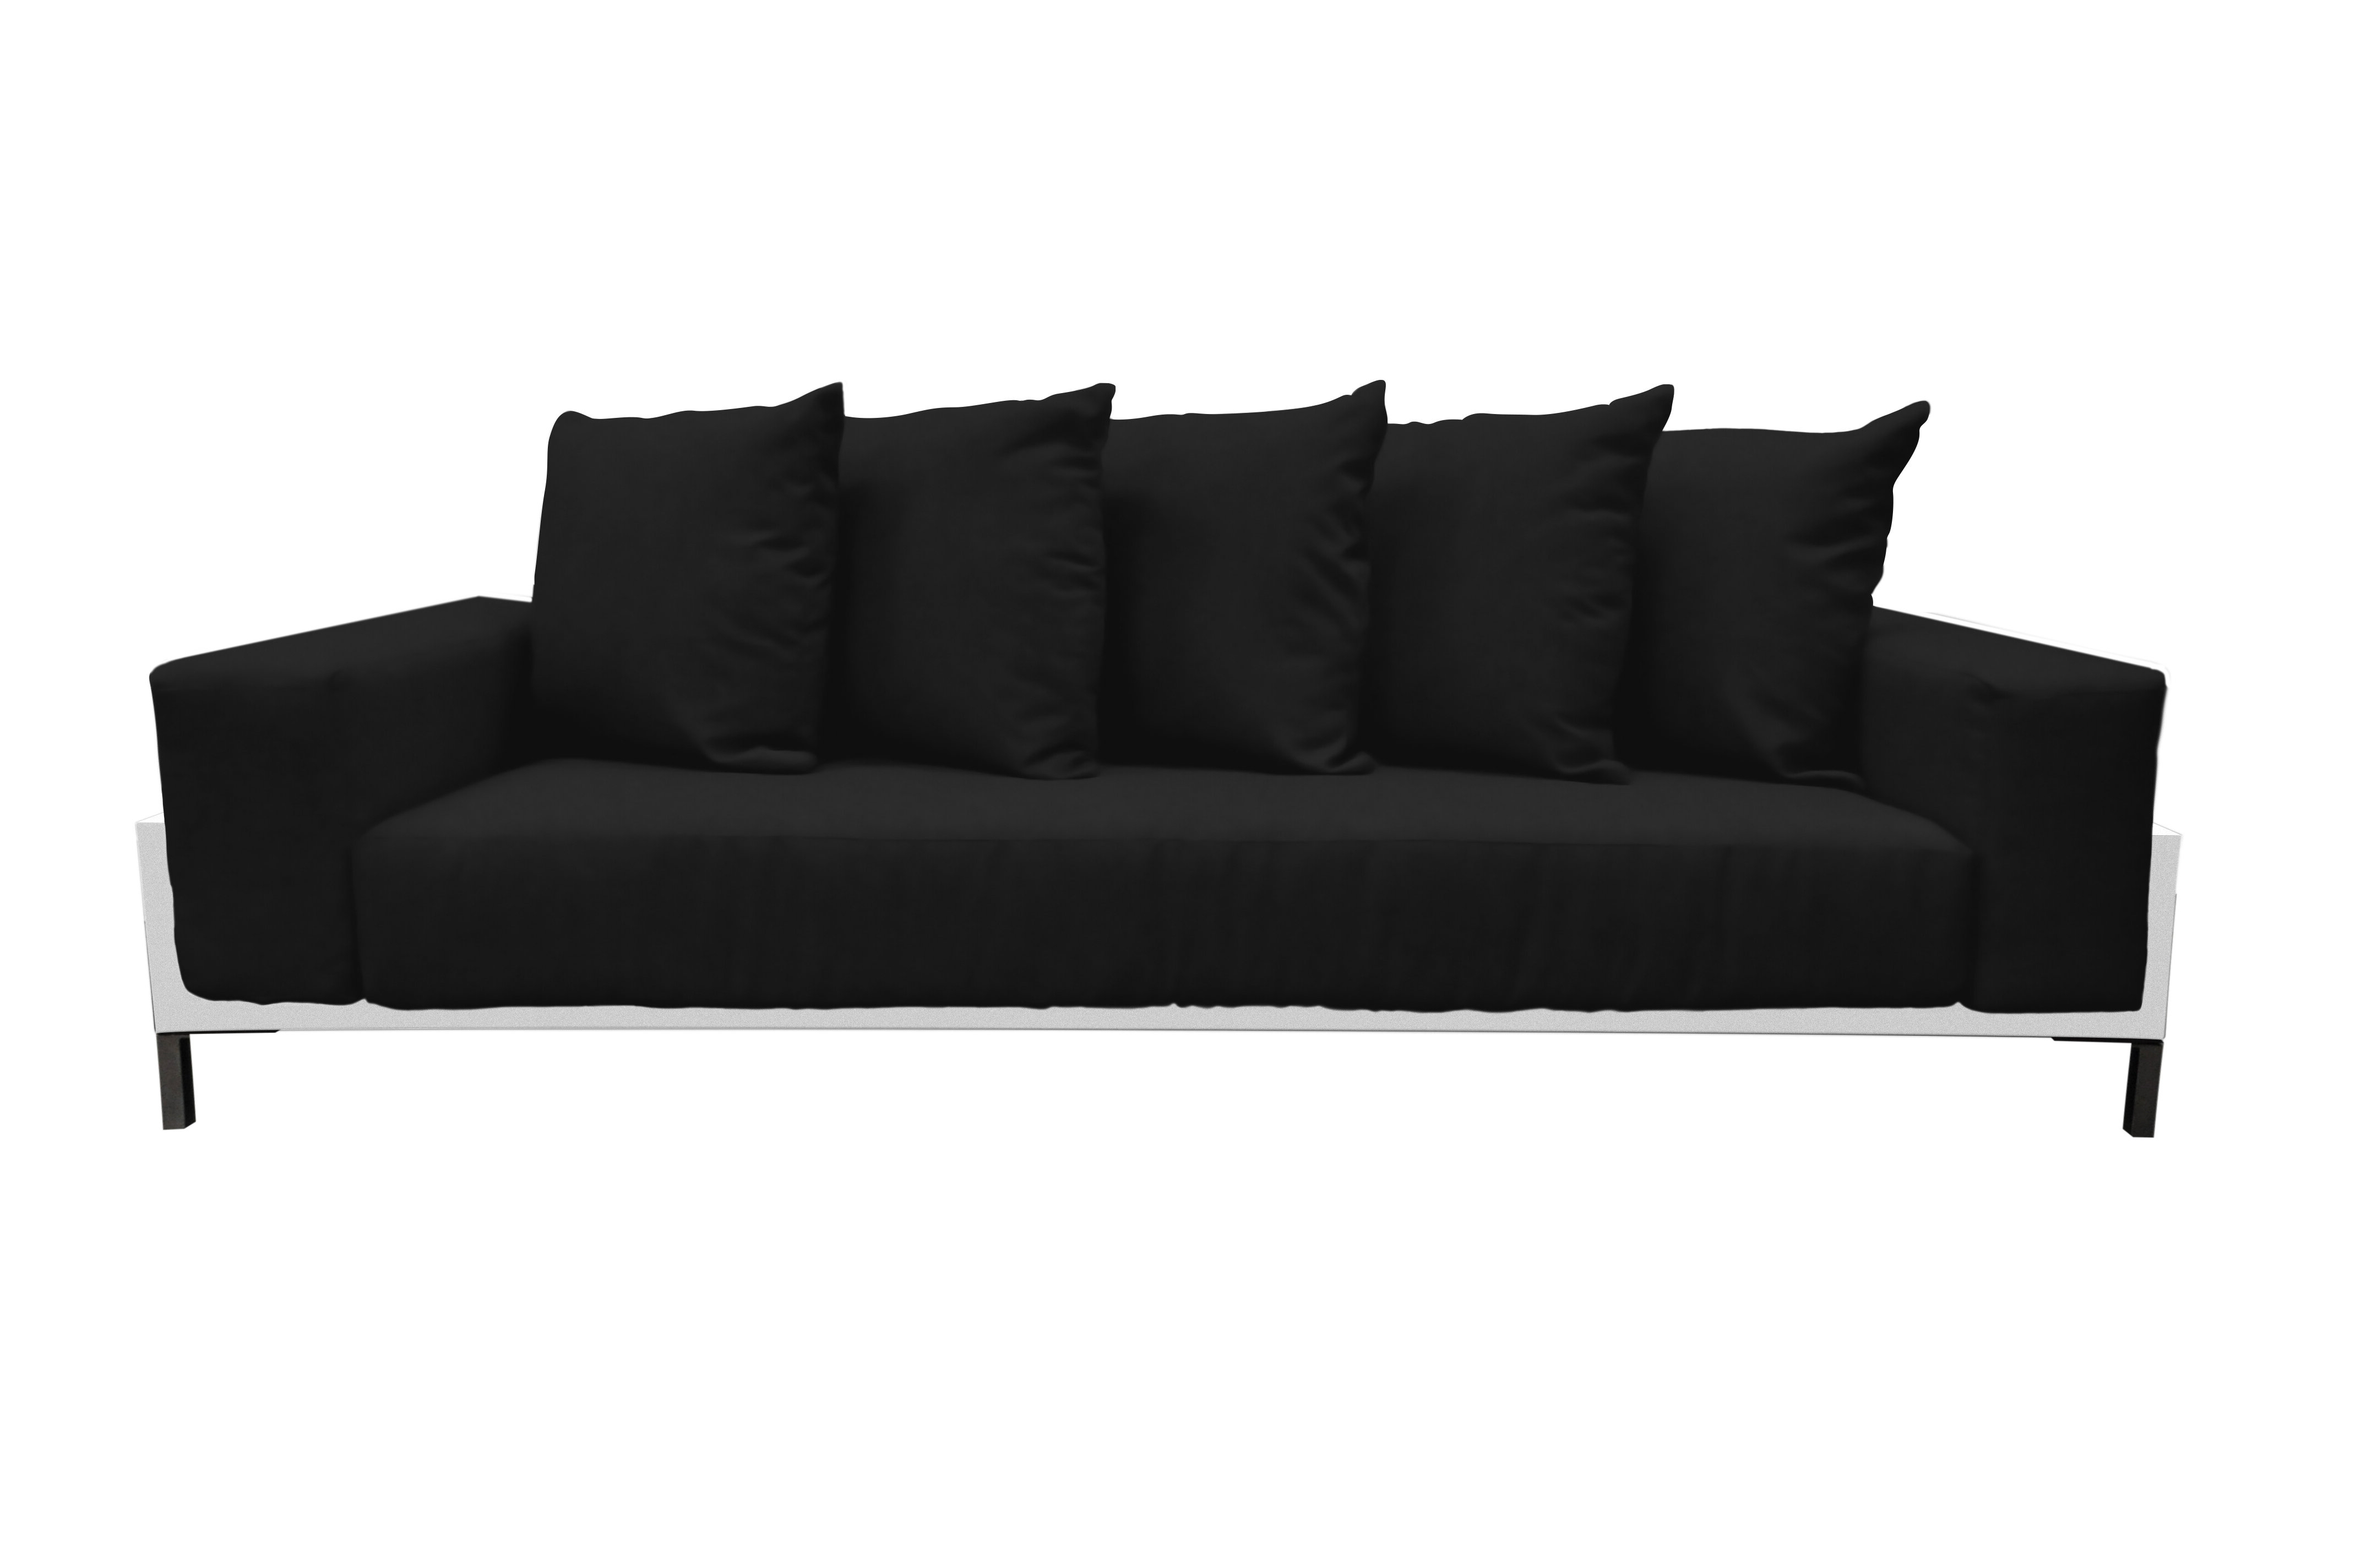 Most Popular Camak Patio Loveseats With Cushions Throughout Tilly Deep Seated Patio Sofa With Cushions (View 13 of 20)